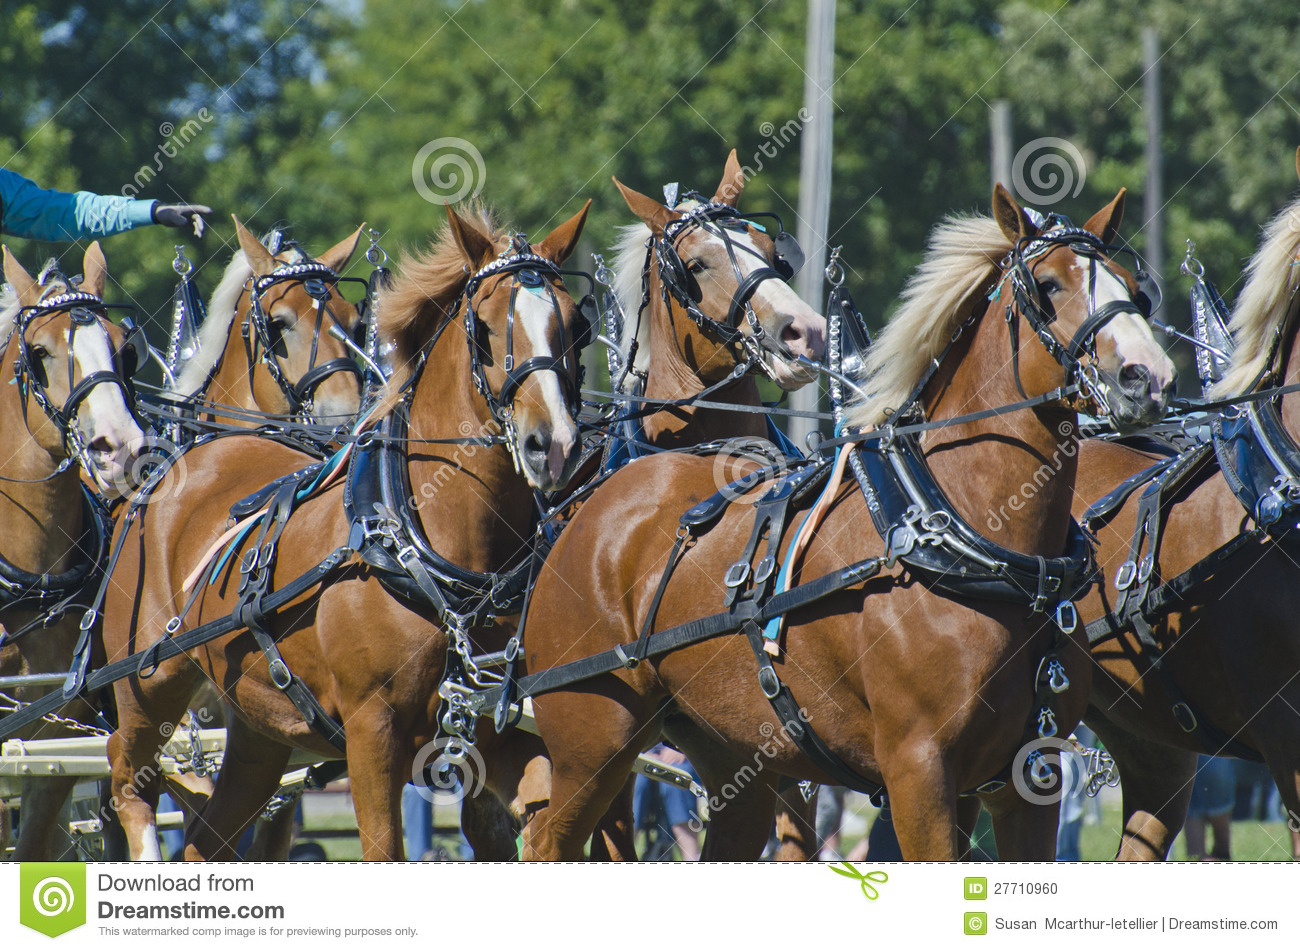 Stock Image Plan Drawing Image2936911 in addition Aws Migration Planning Roadmap in addition Watch together with Do Ho Su Sculptures moreover Stock Photo Team Belgian Draft Horses Country Fair Image27710960. on architecture blueprints